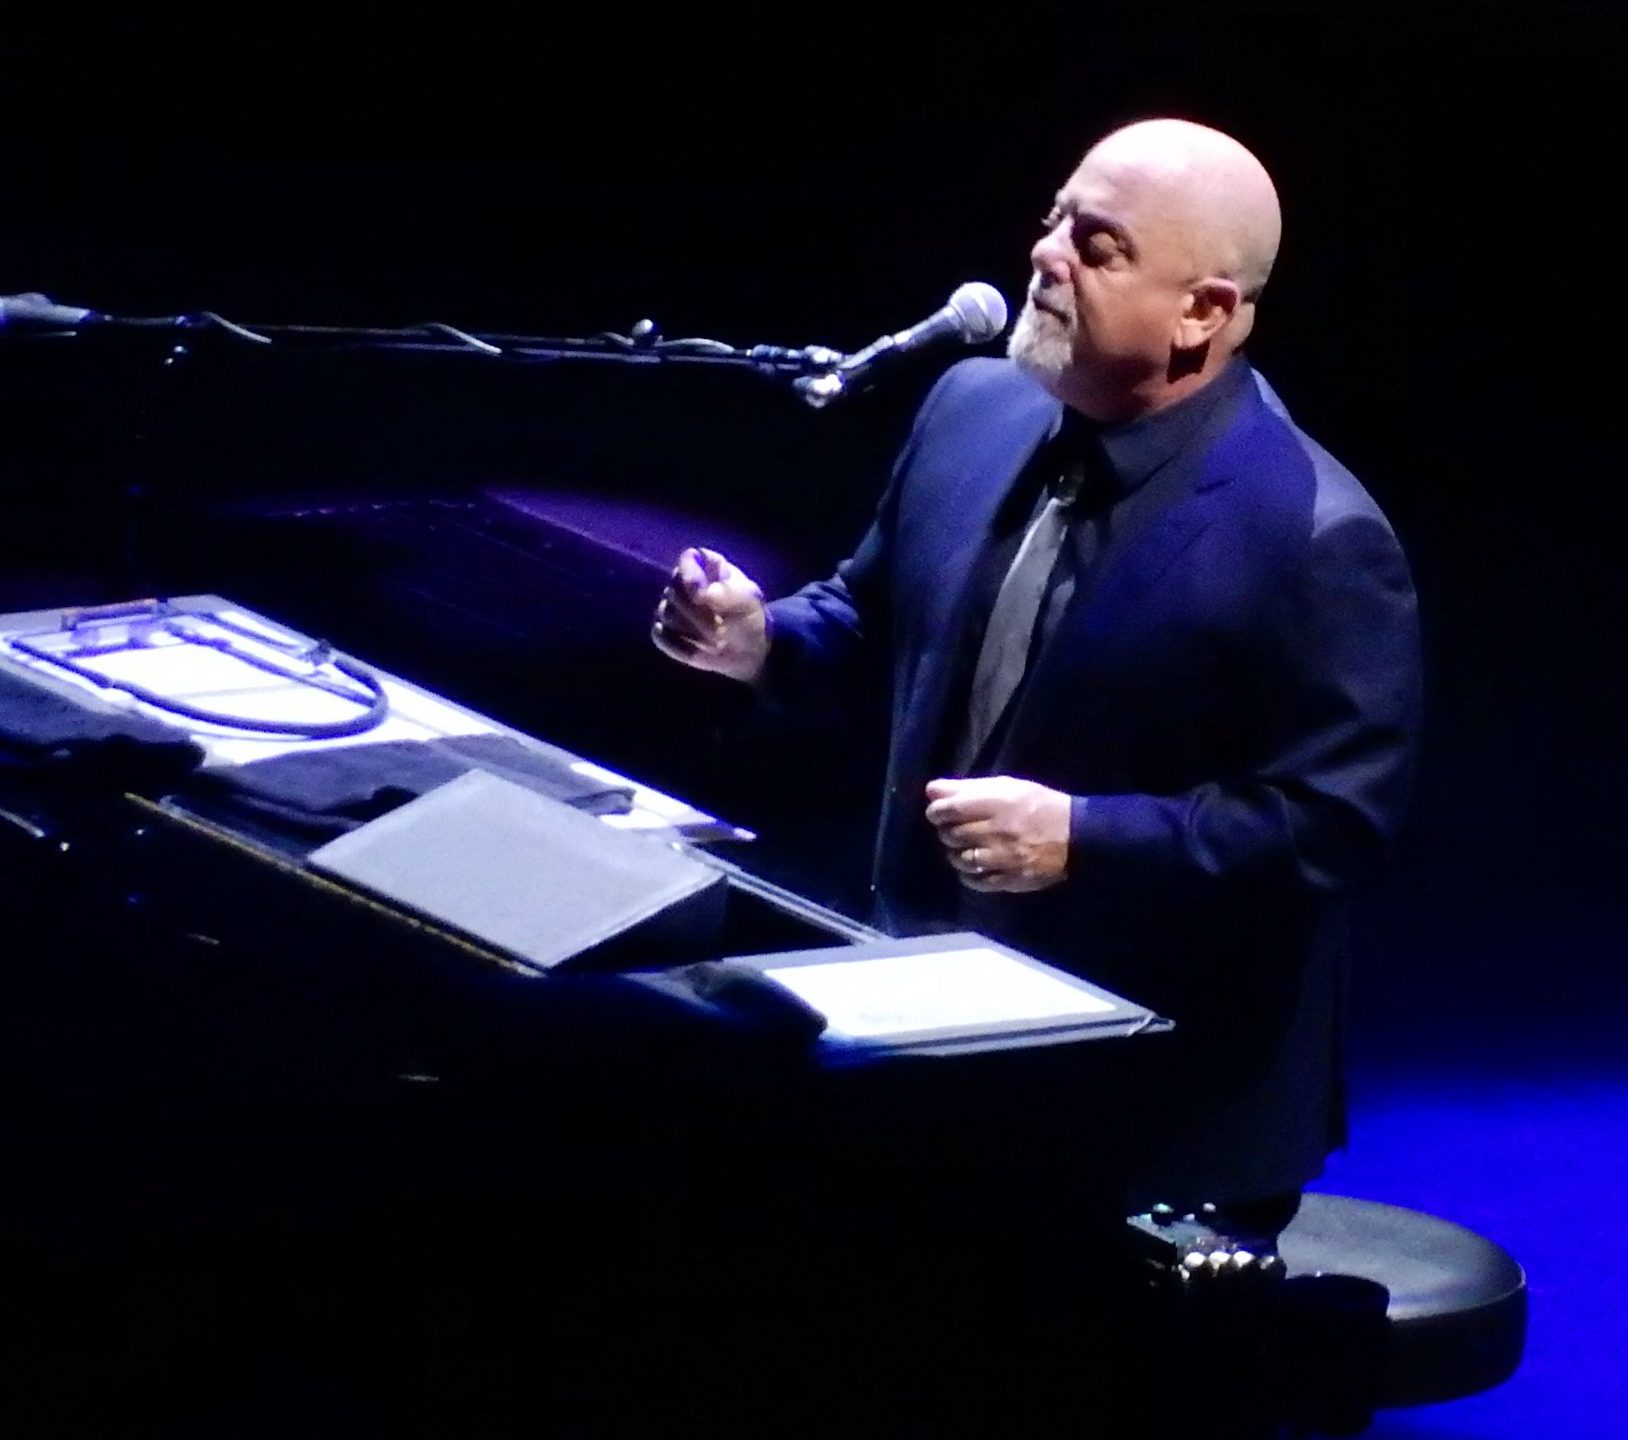 24245289295 8f4c41af1e k e1621418233971 20 Things You Probably Didn't Know About Billy Joel